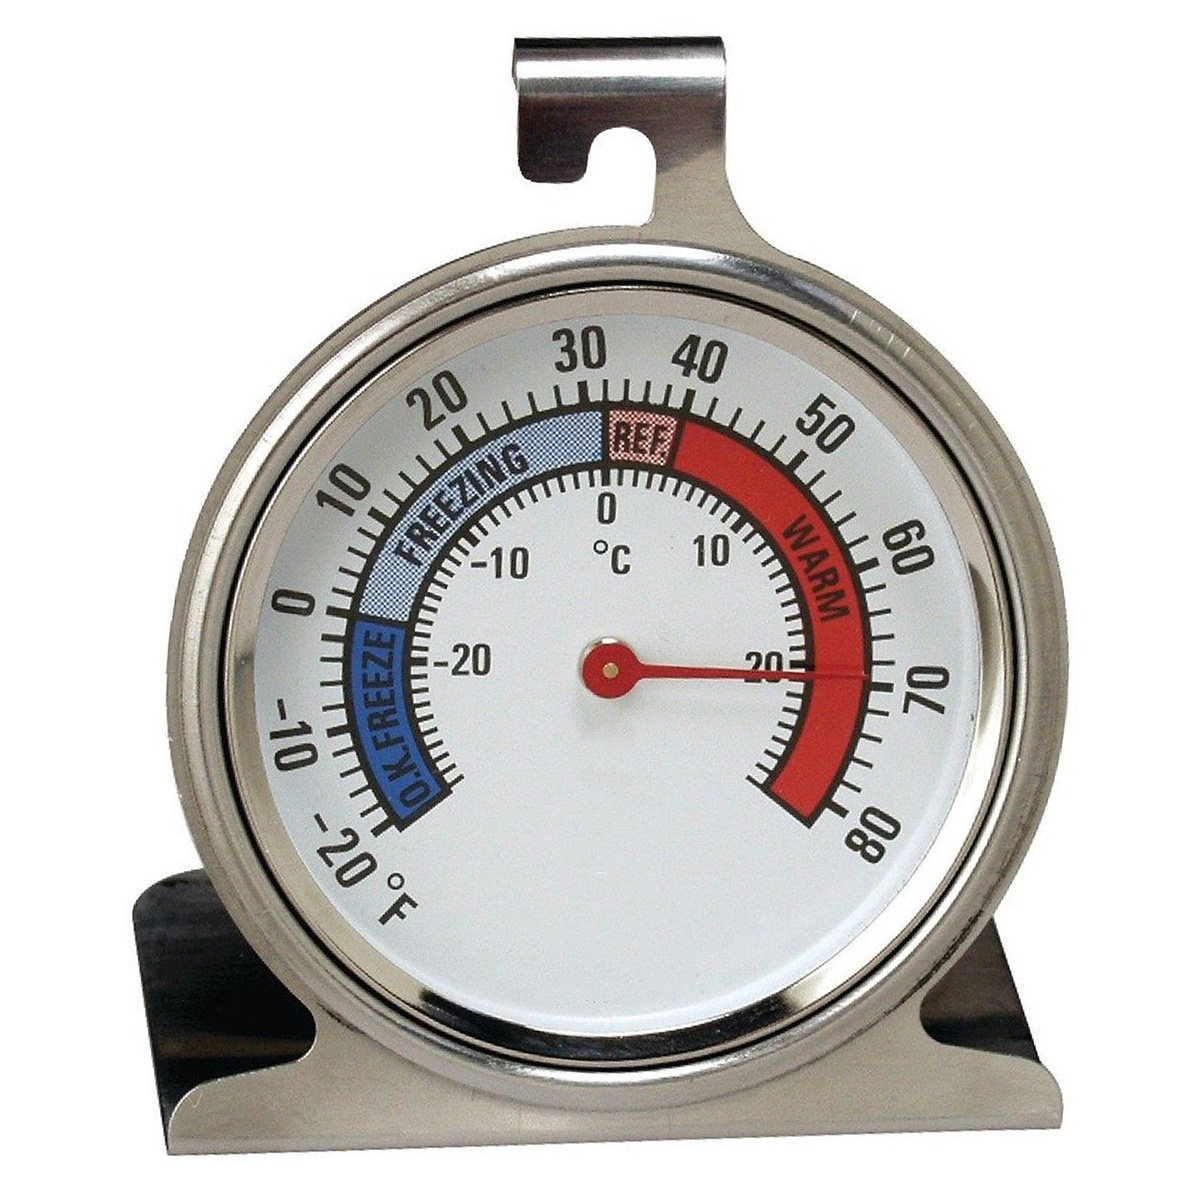 MyMei stainless steel wine thermometer